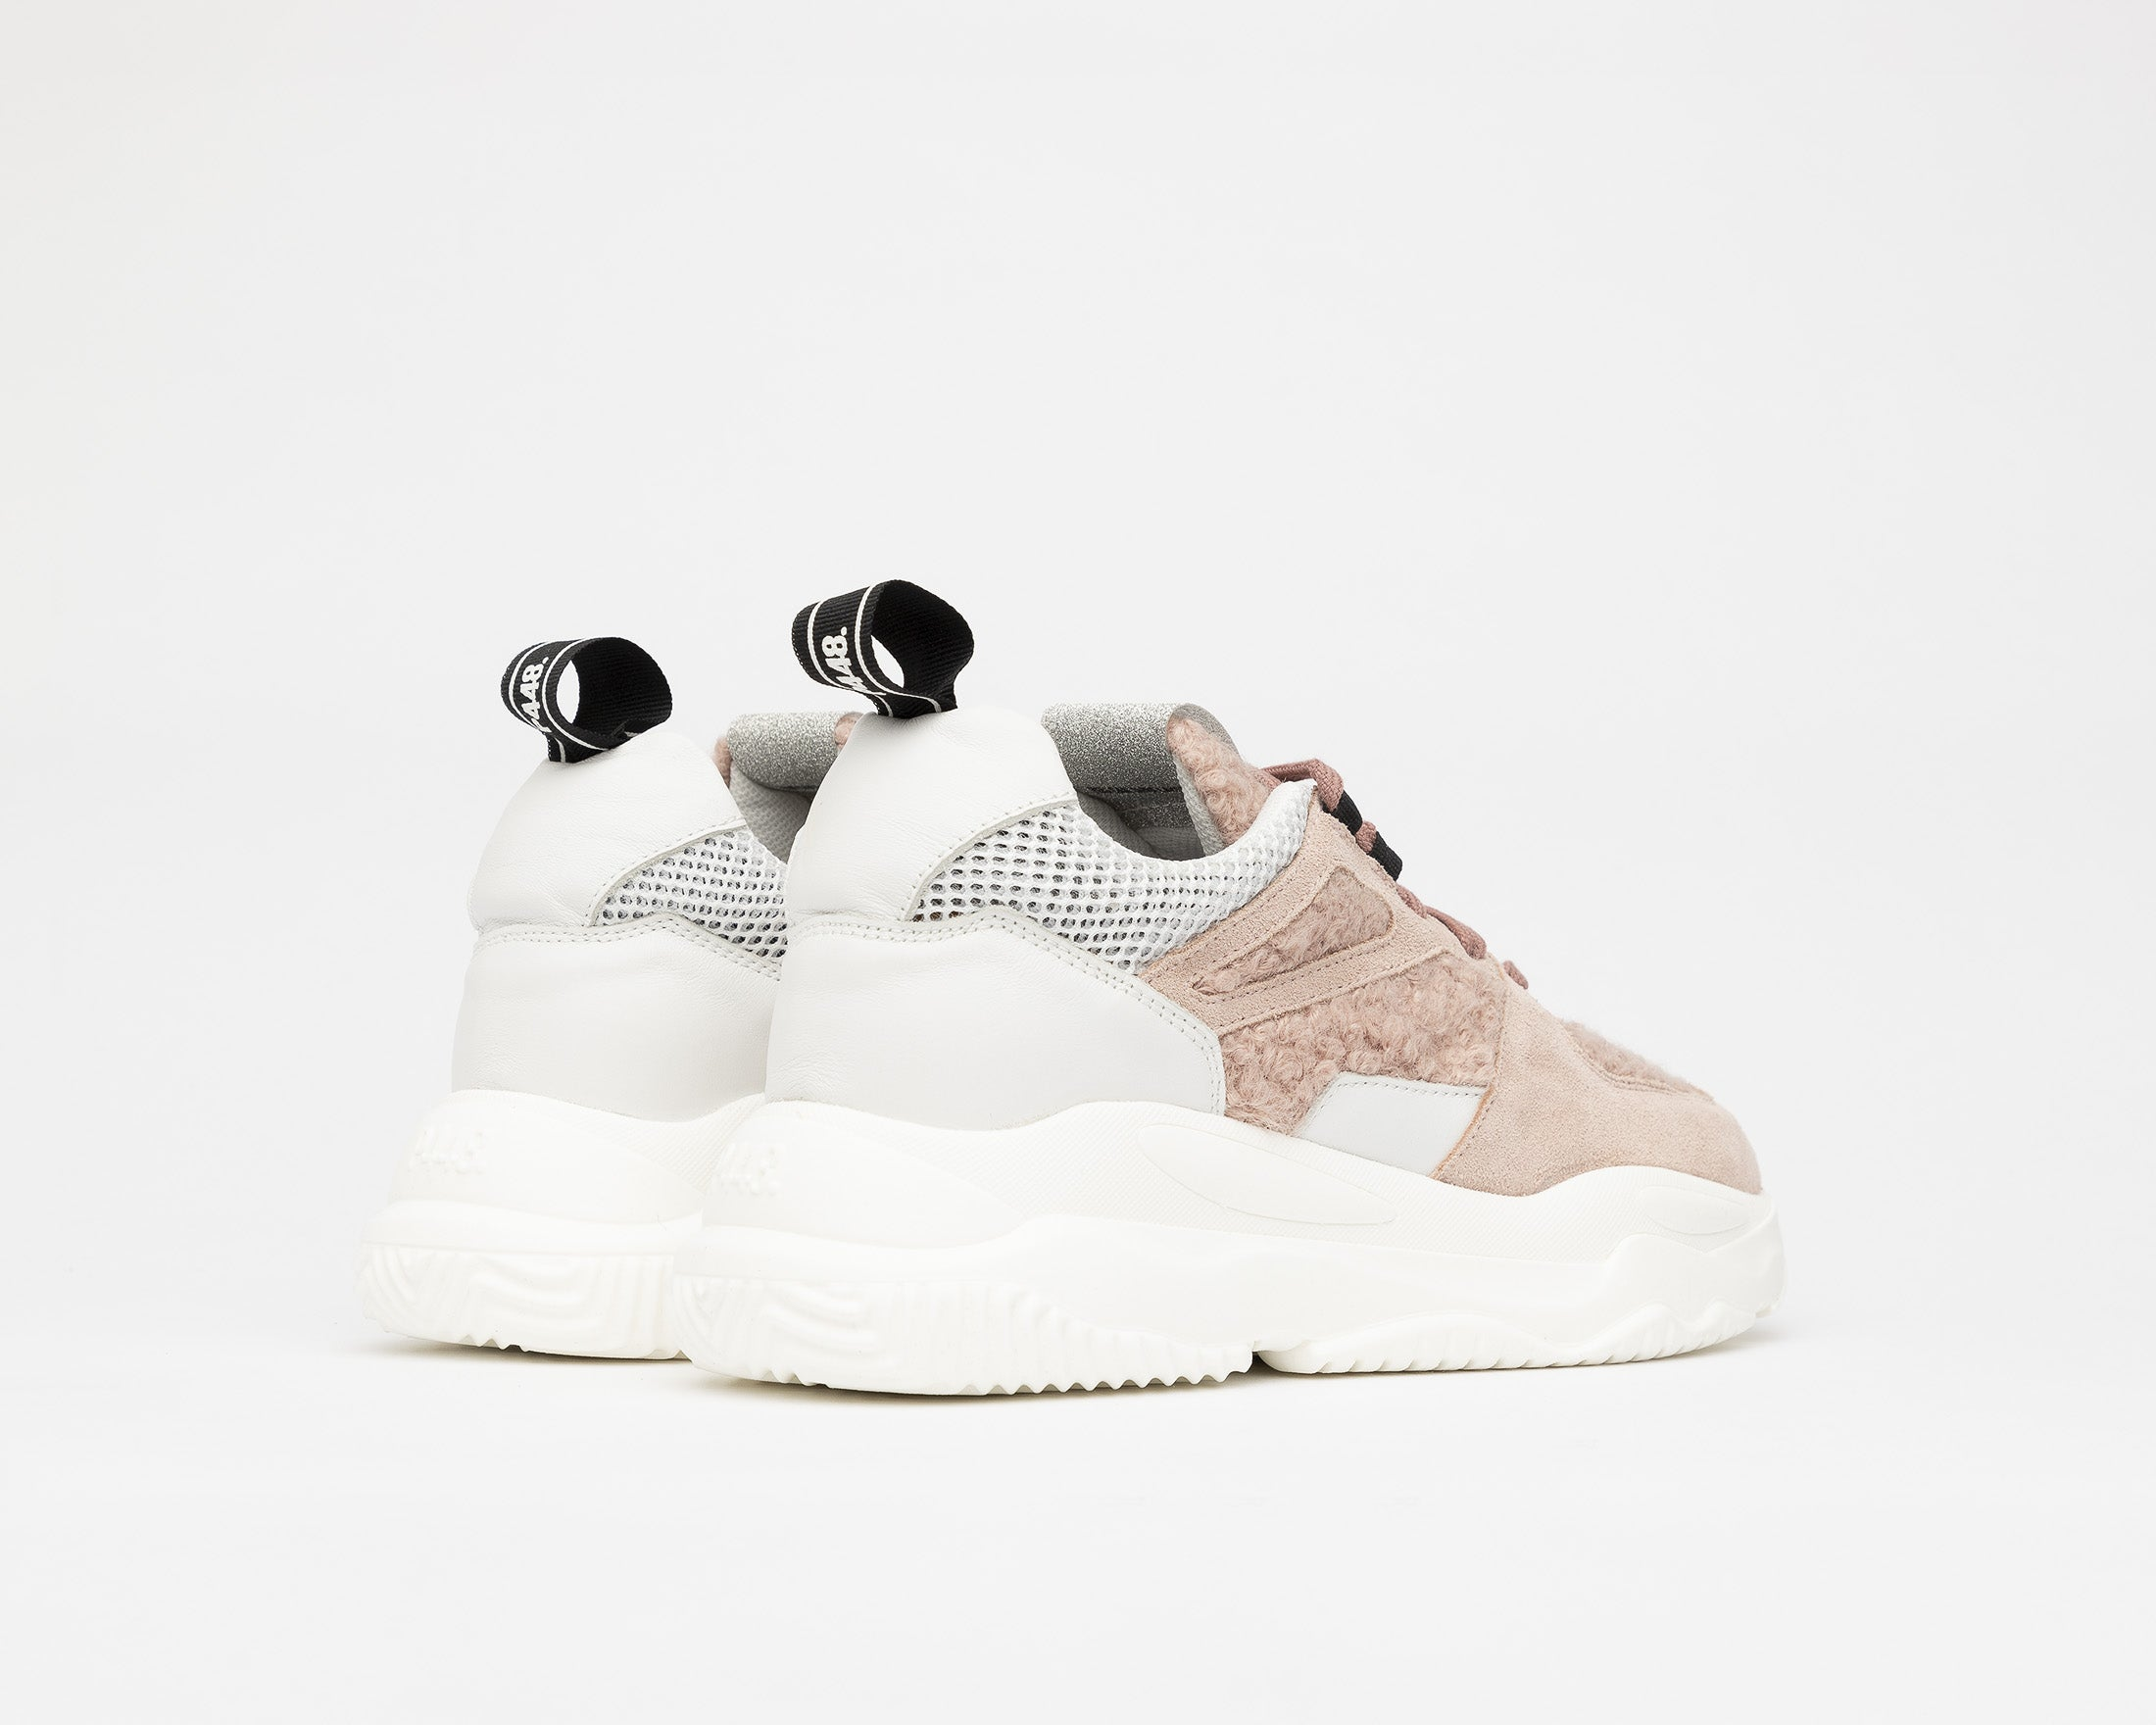 Luke Chunky Sneaker in Lamb - Back